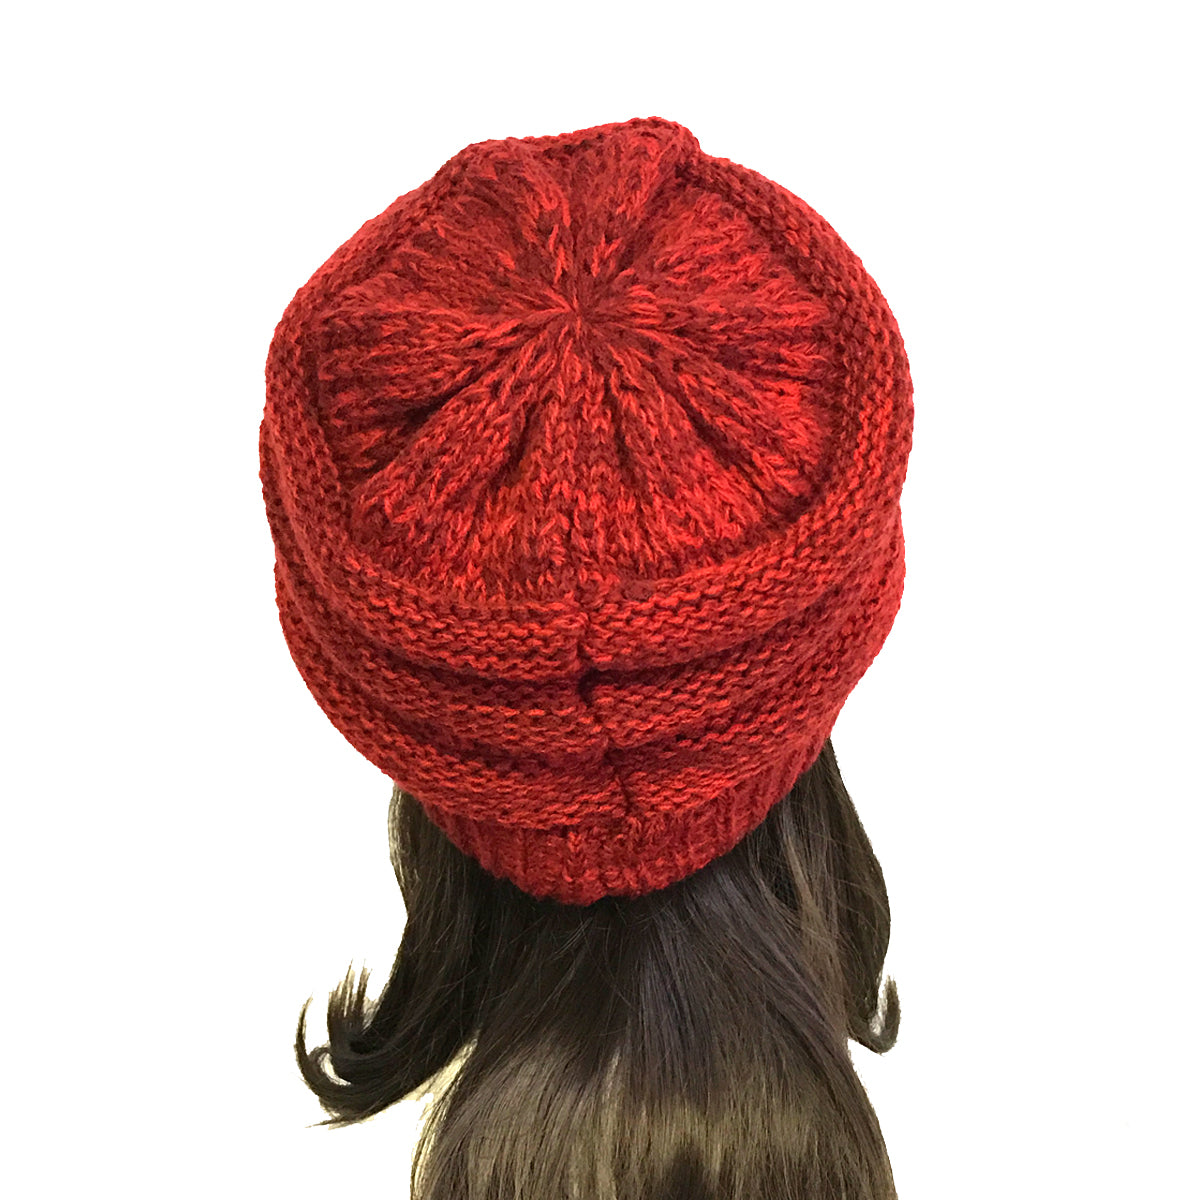 Wrapables Two Tone Knit Beanie Cap Hat